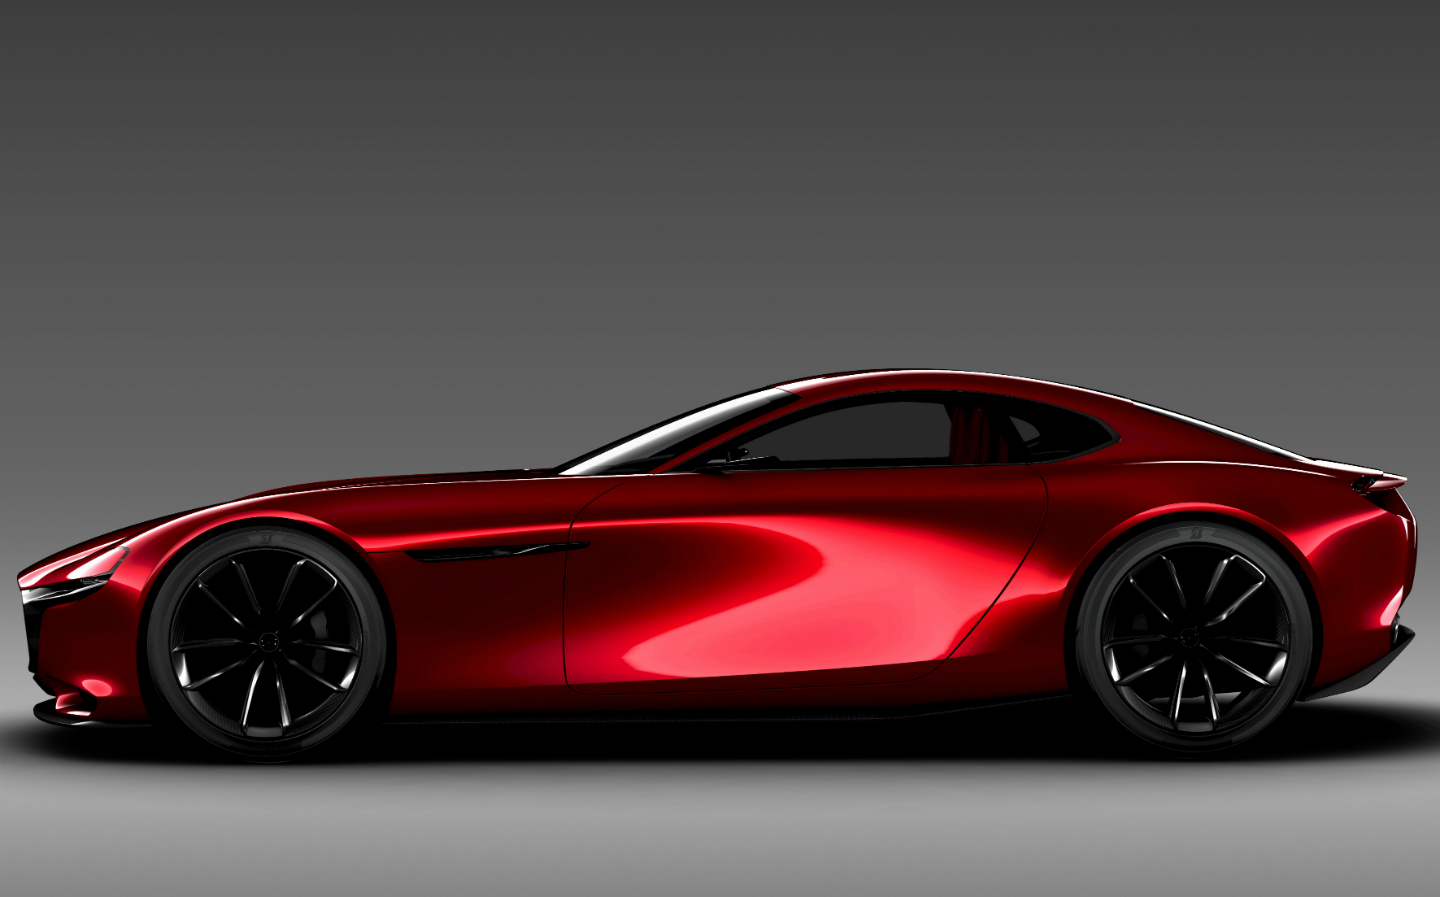 41 The Best 2020 Mazda RX7 Concept and Review